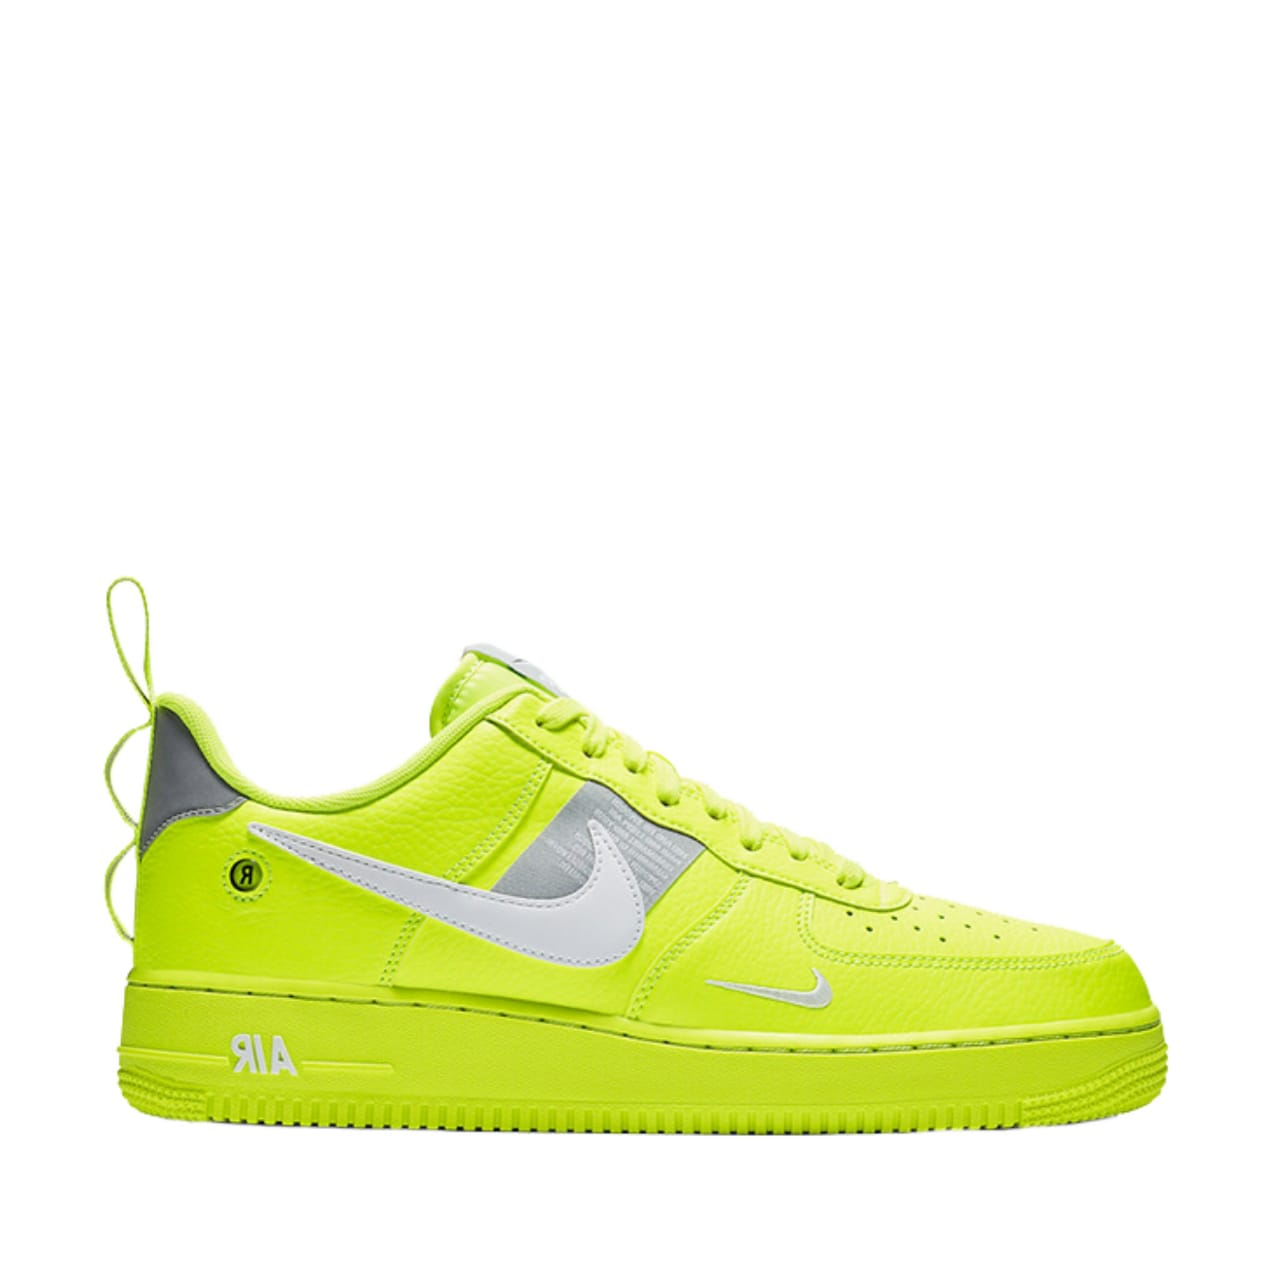 Air Force 1 Low LV8 Utility GS 'Volt'